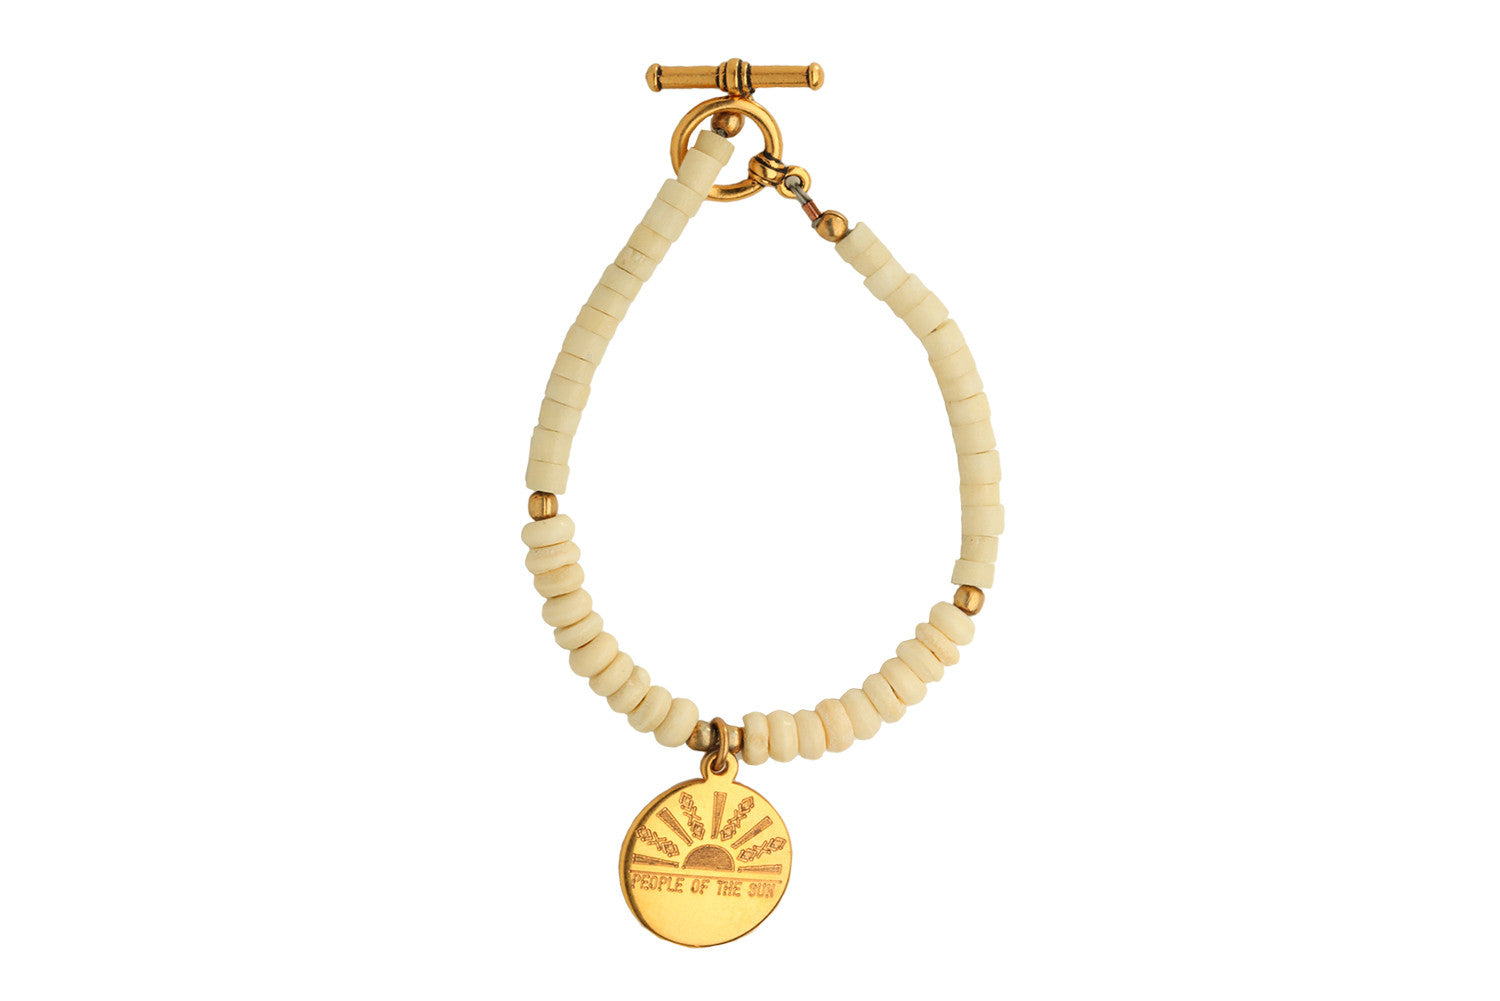 People of the Sun Charm Bone Bracelet